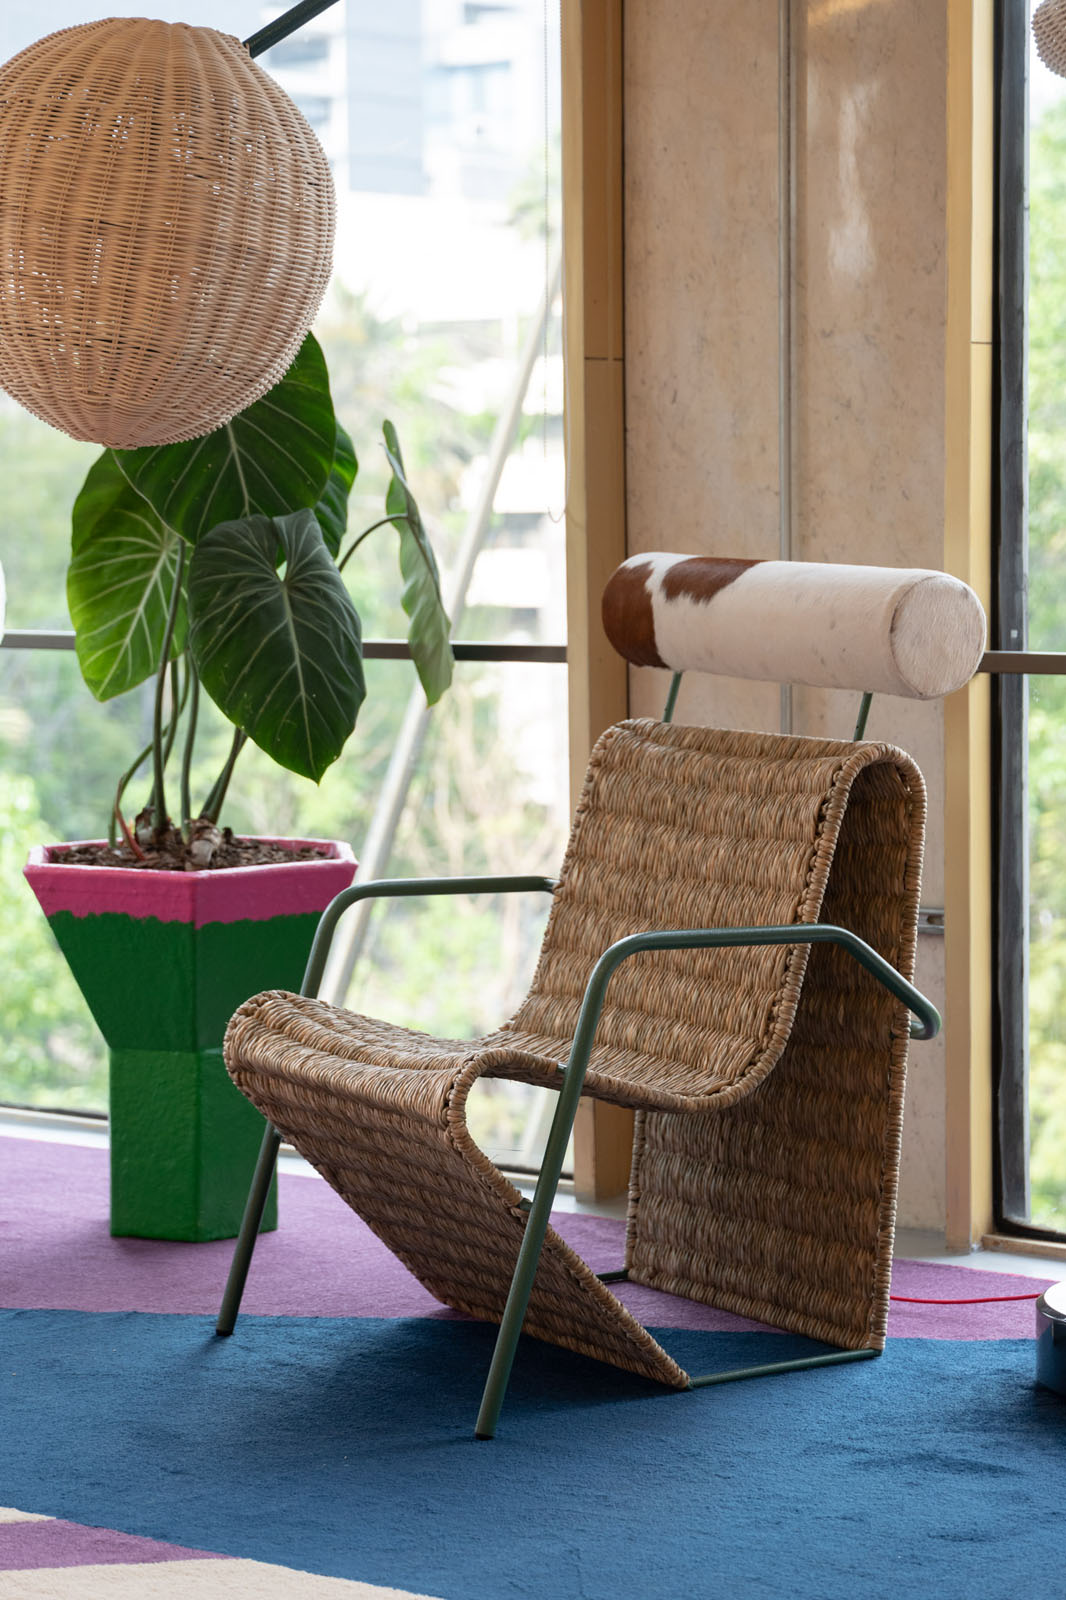 AGO Silla Tropical